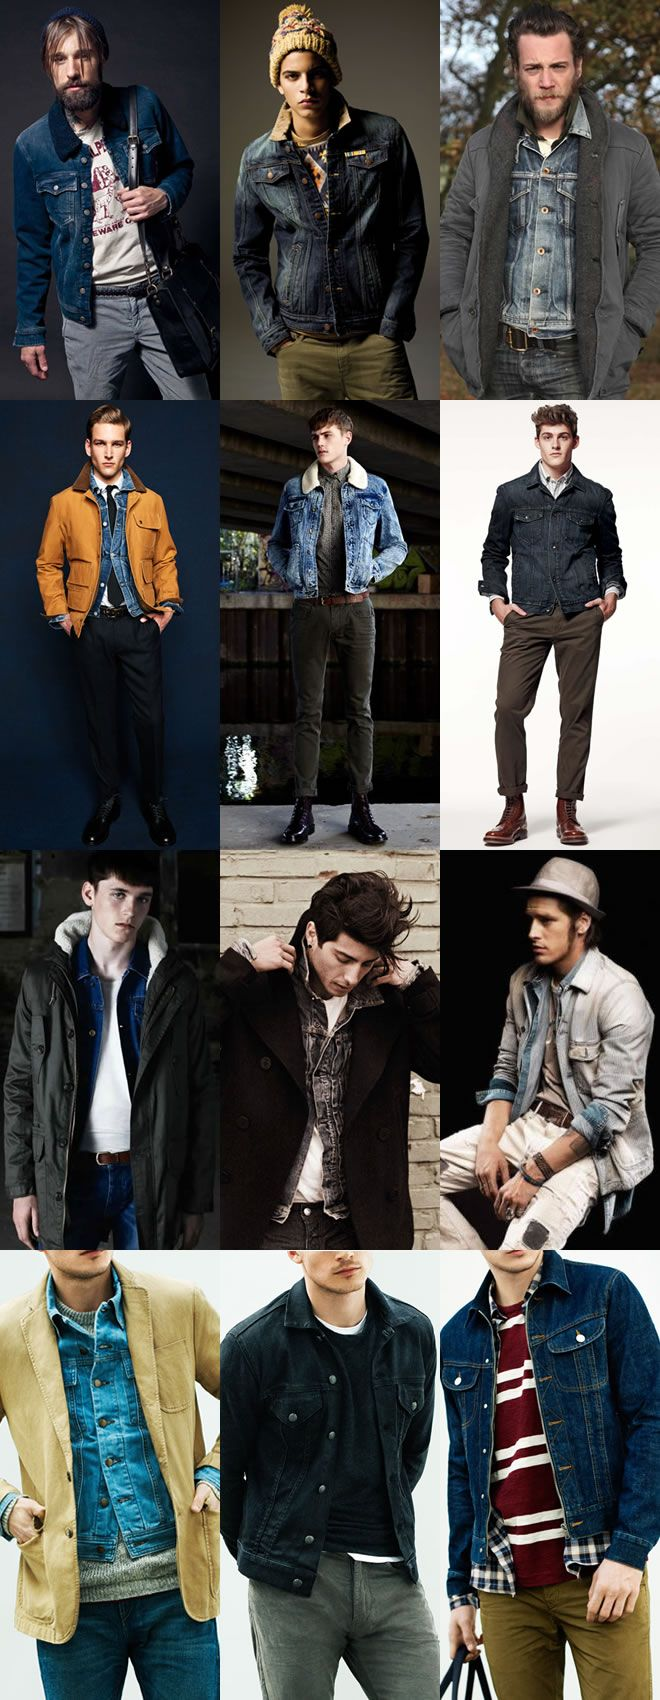 As a layering option, the denim jacket is a great way to add texture to your look – a vital ingredient of successful, stylish layering.